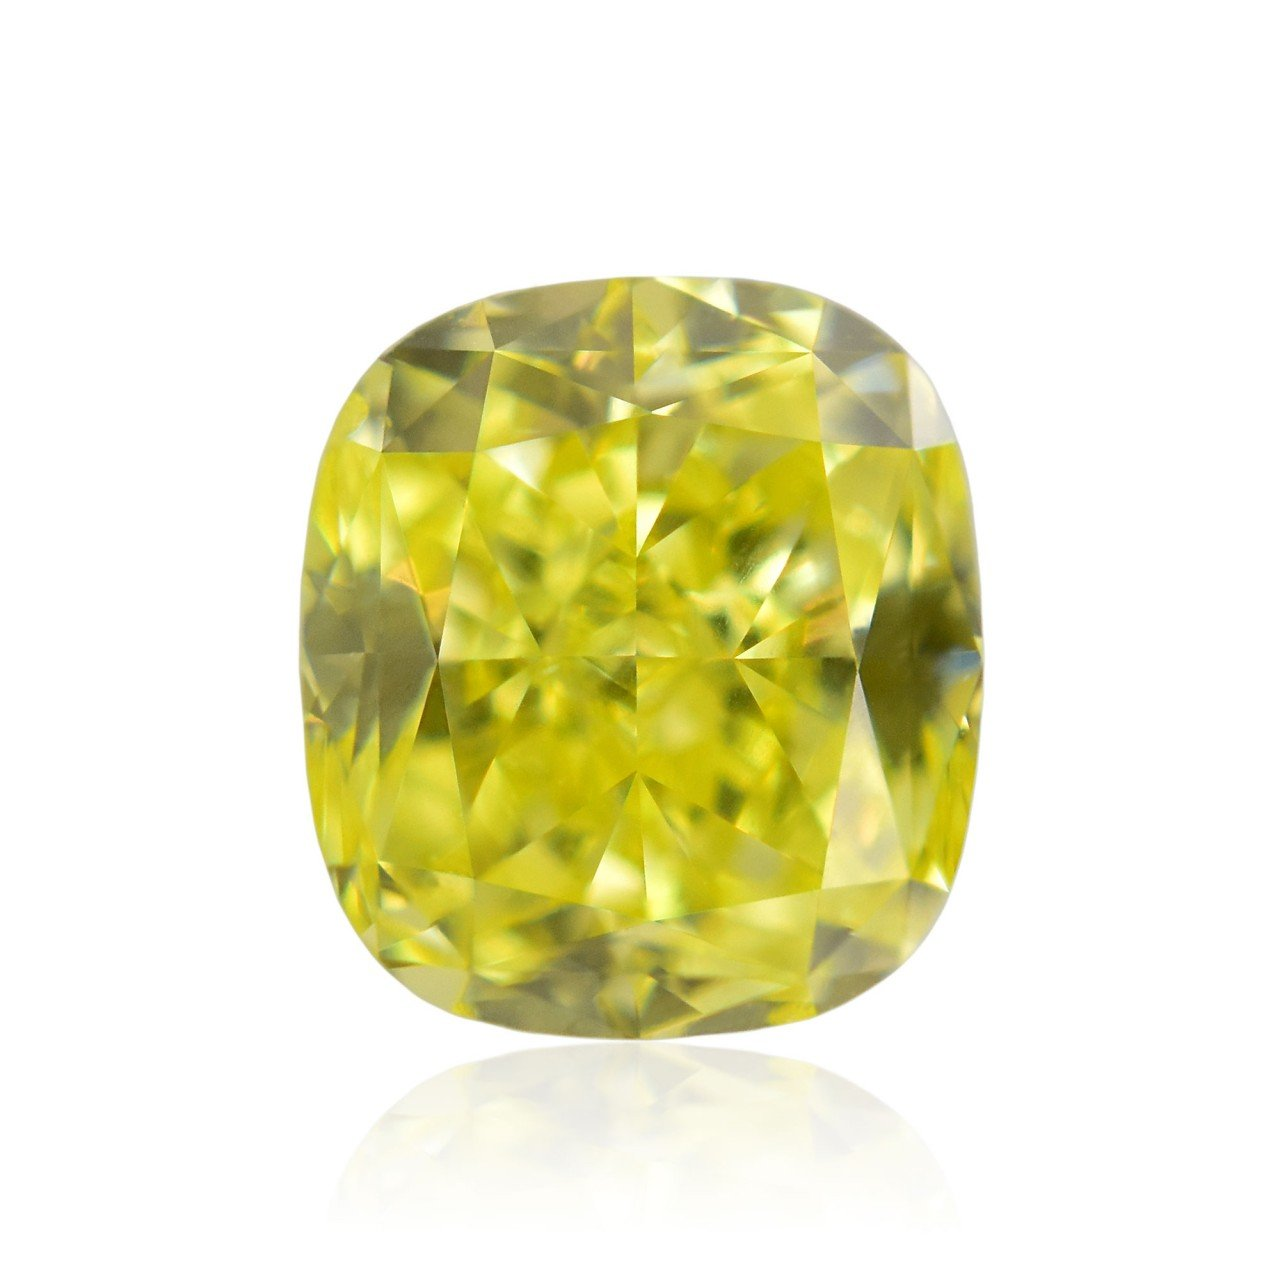 0.70Cts Fancy Intense Yellow Loose Diamond Natural Color Cushion Cut GIA Cert